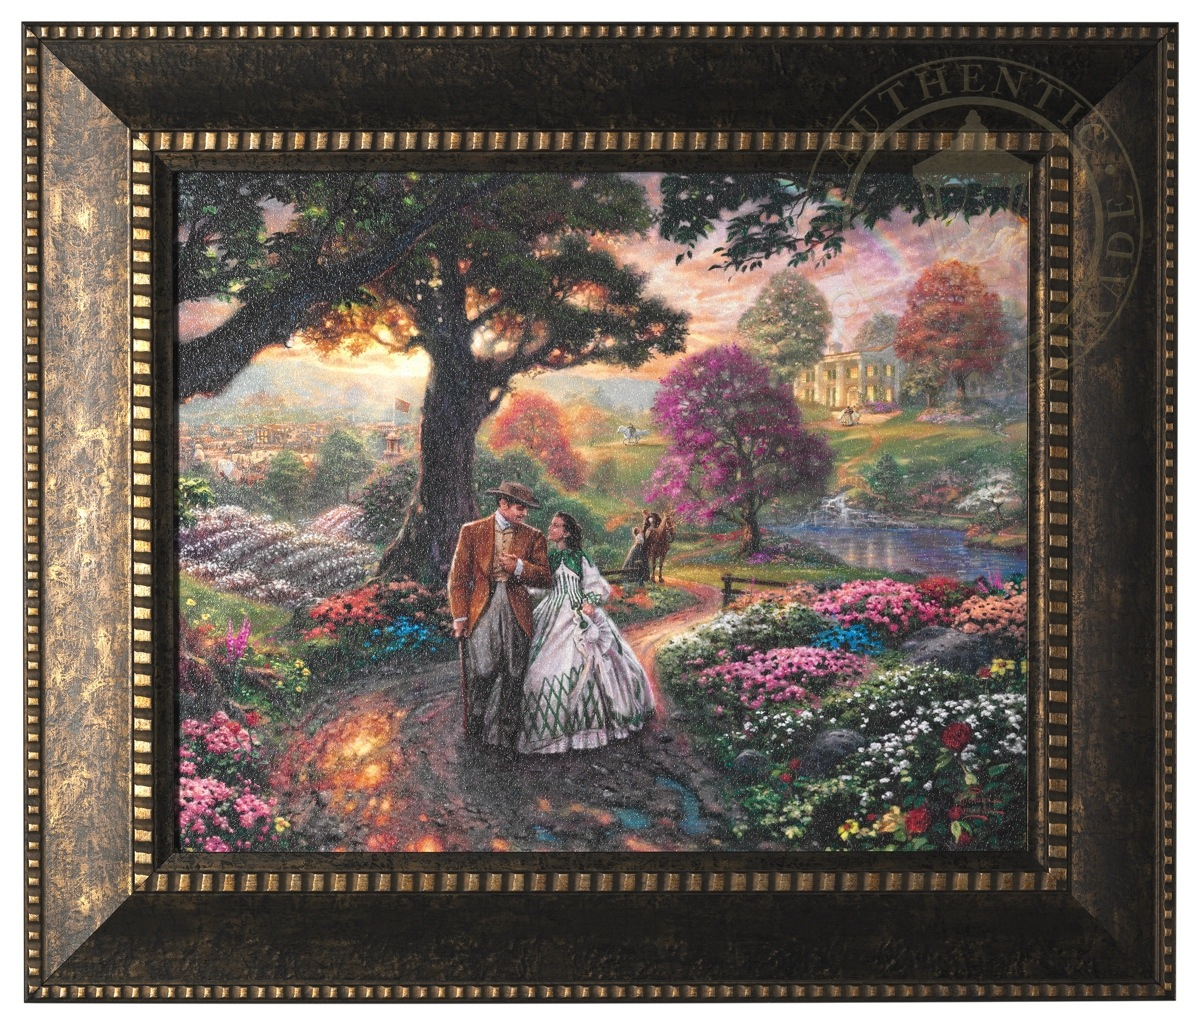 Gone With The Wind – Framed Textured Print | The Thomas Kinkade Company